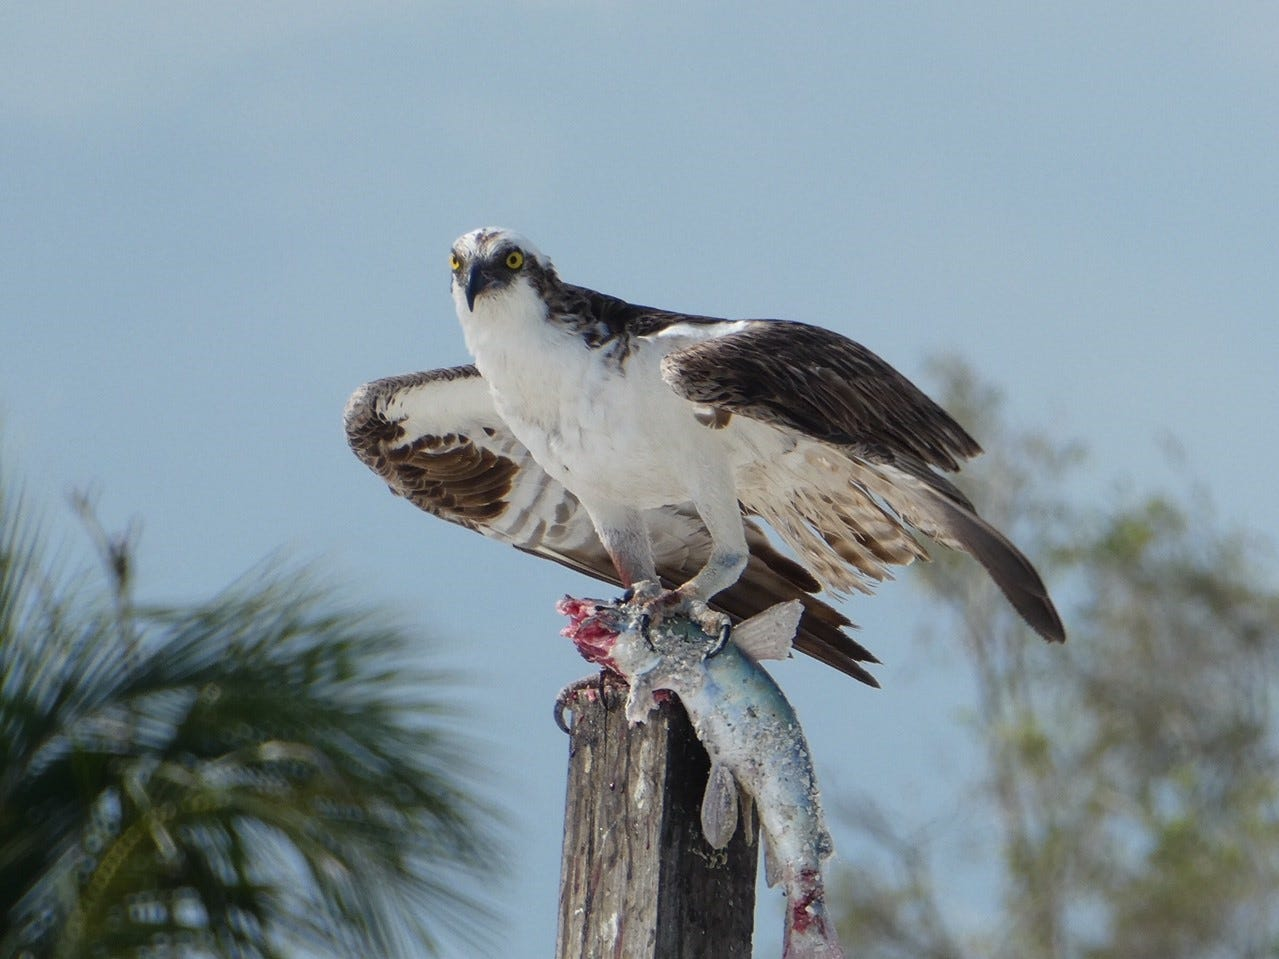 This photo of a majestic osprey enjoying lunch was taken by Denise Nowell of Marco Island.